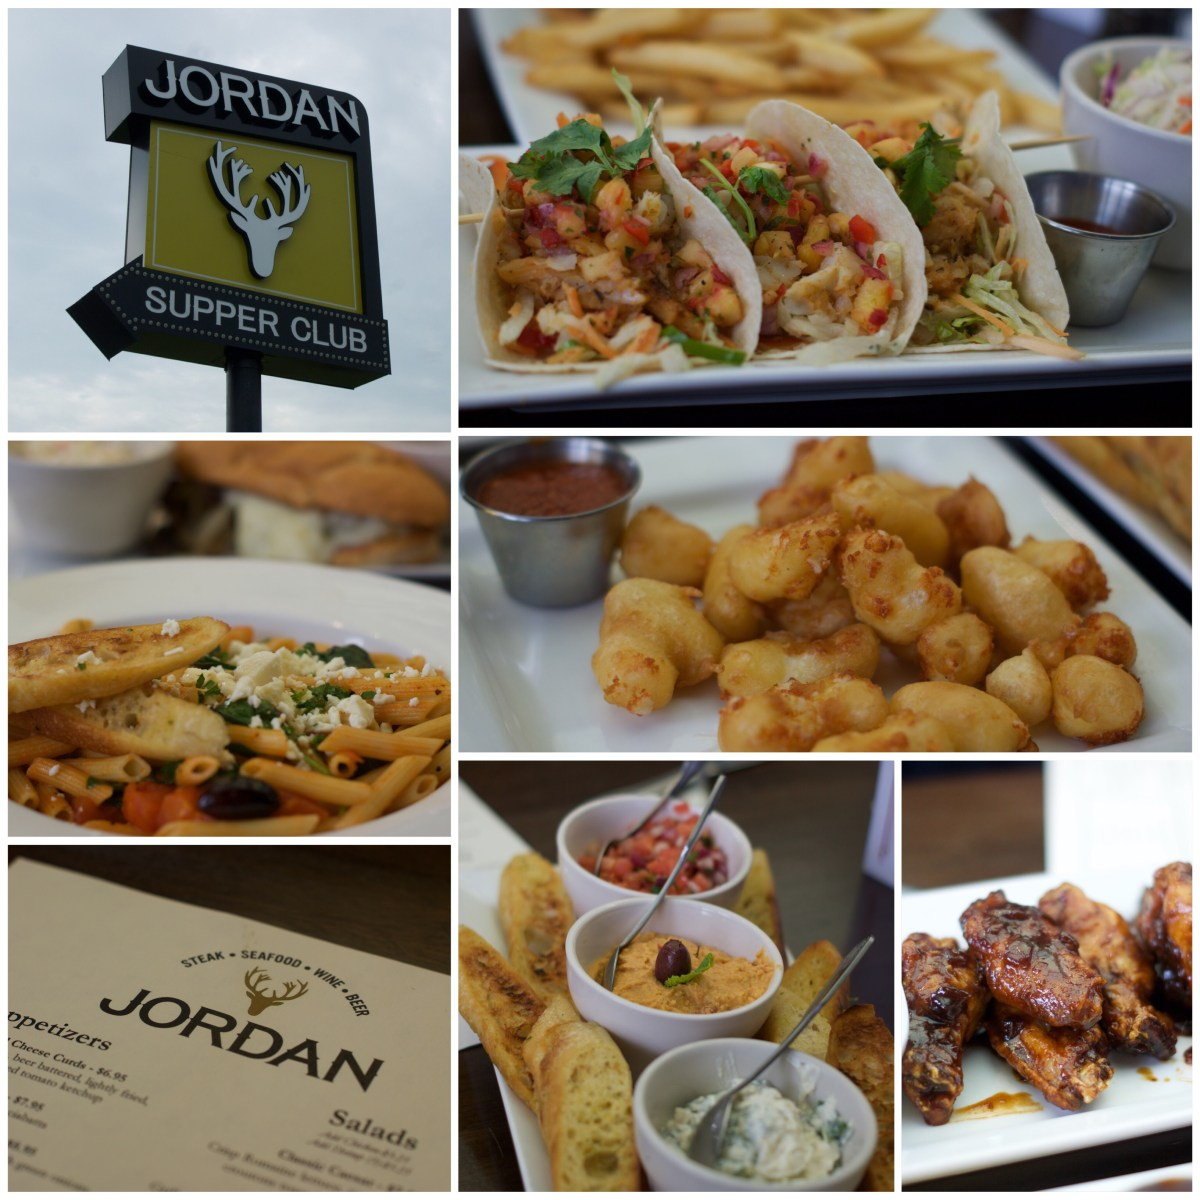 Jordan Supper Club and Tap Room